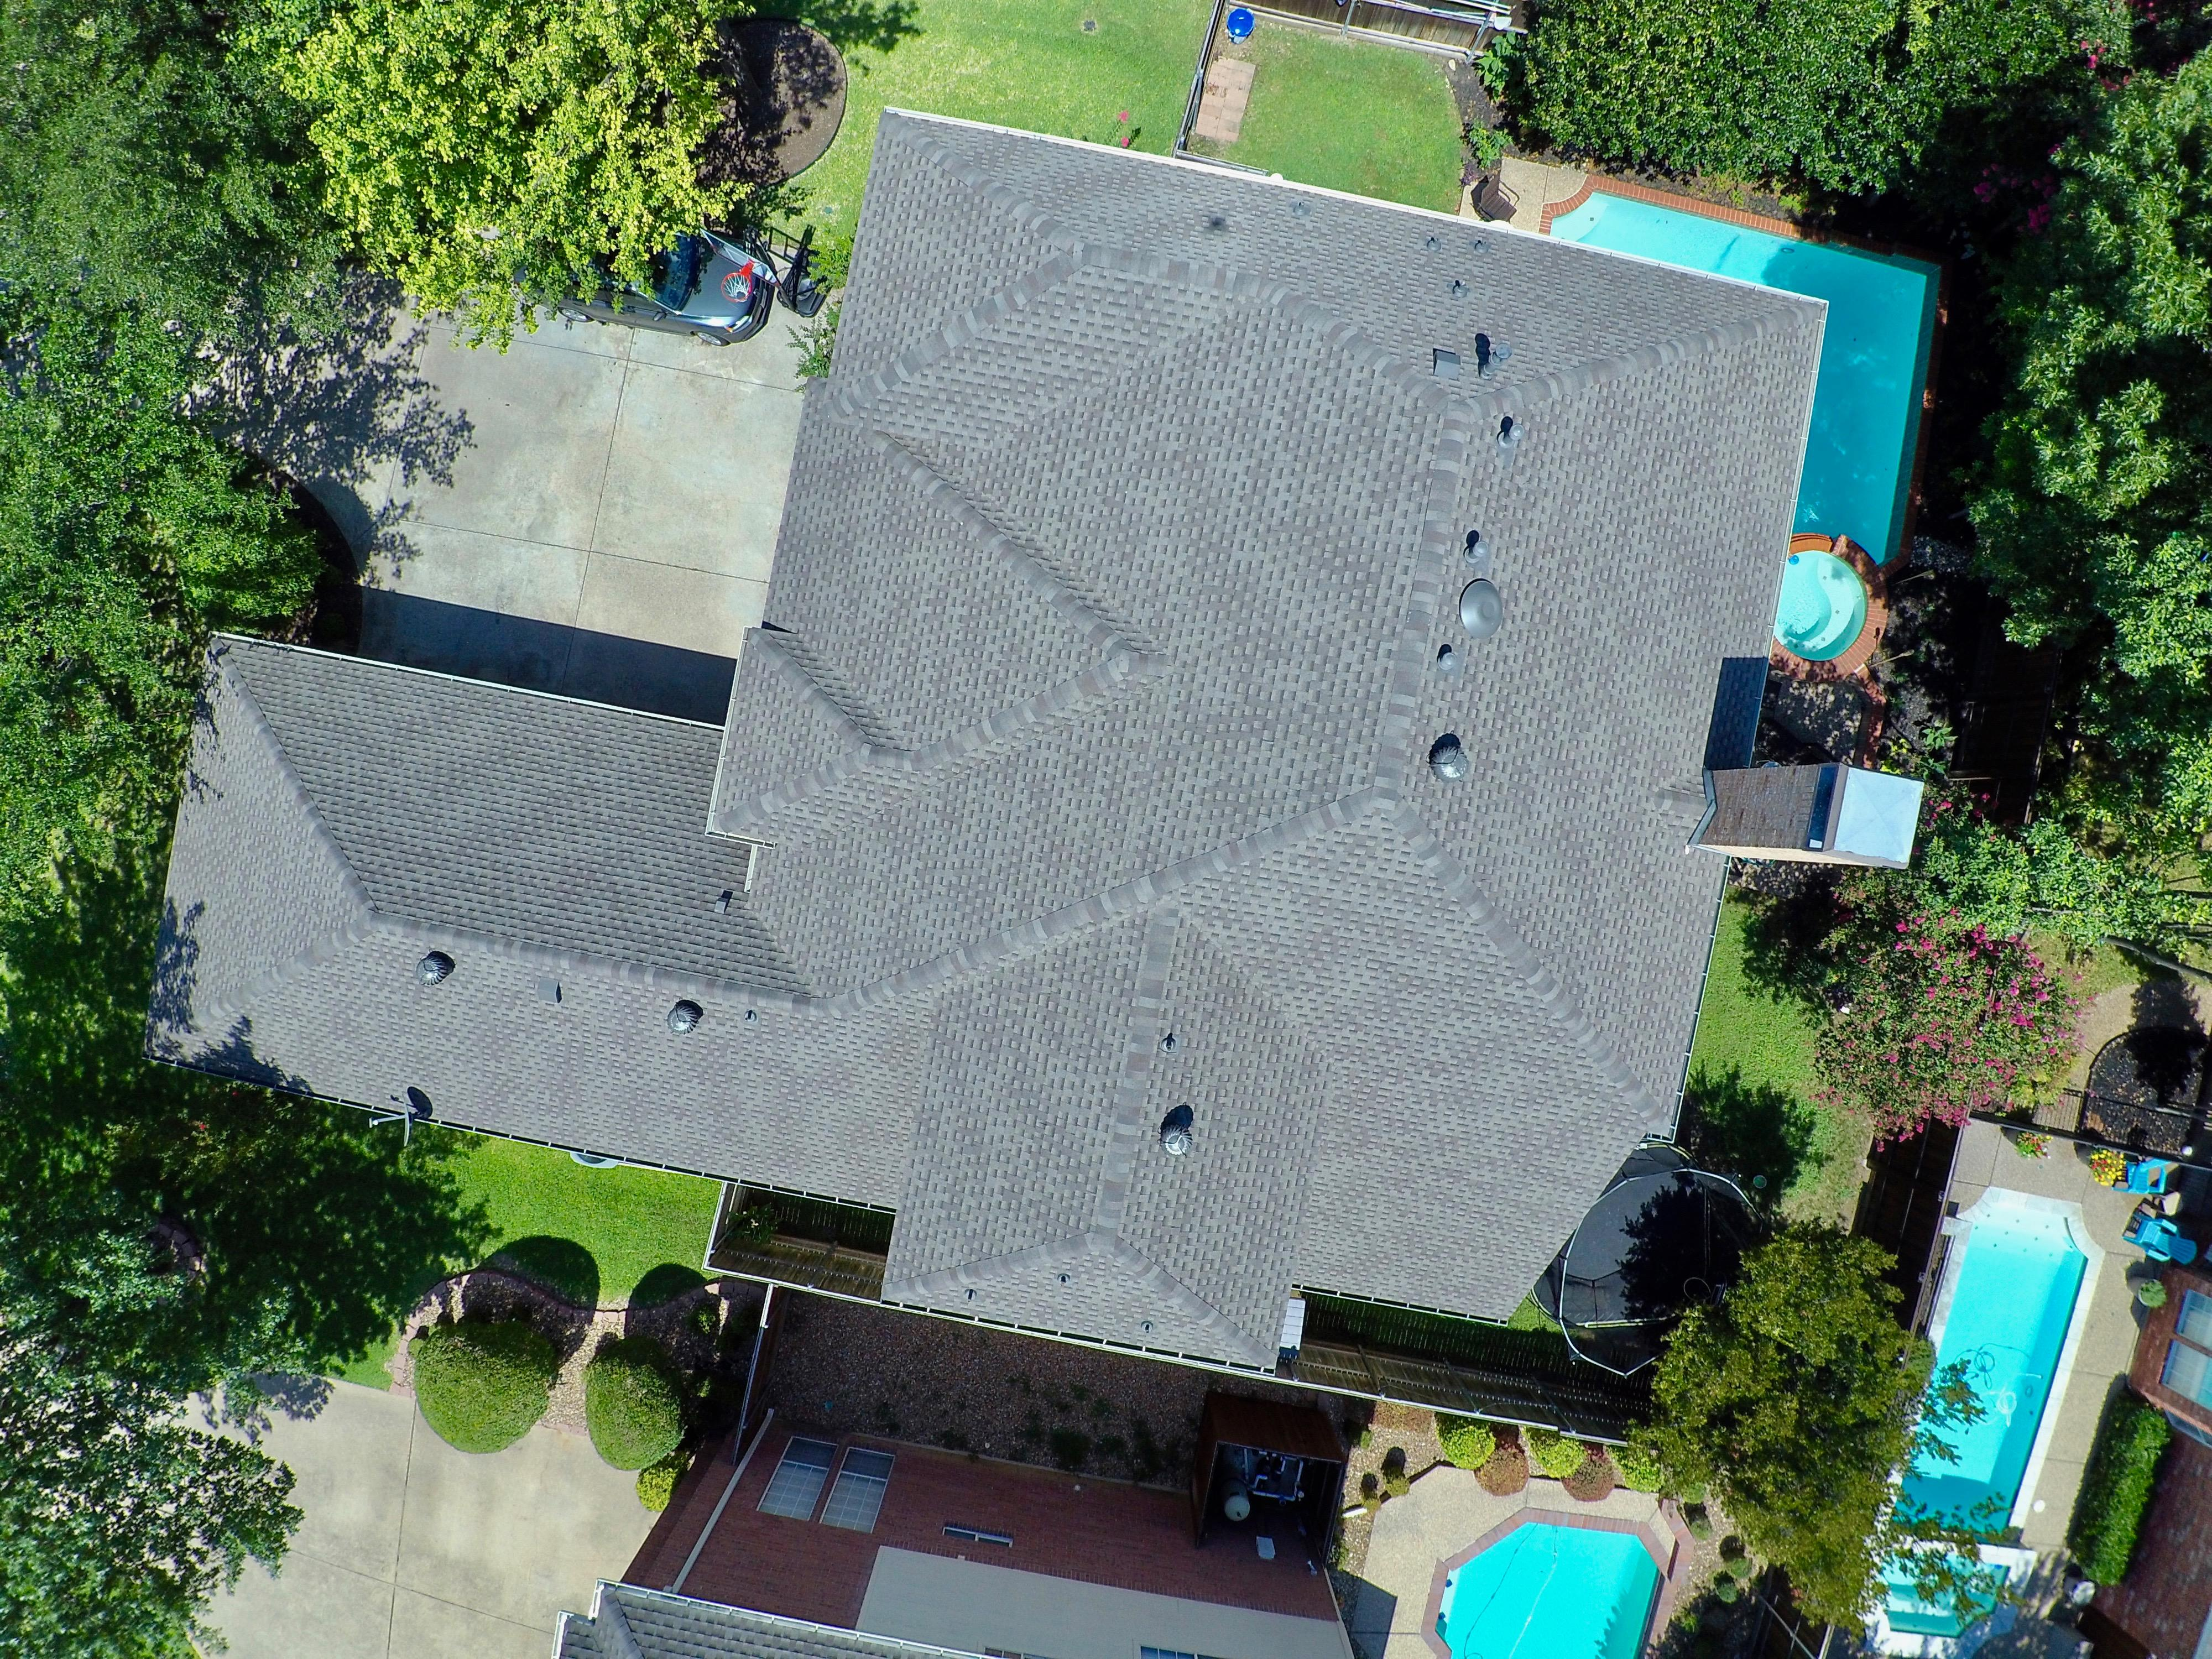 Buford Roofing Amp Construction Inc Grapevine Texas